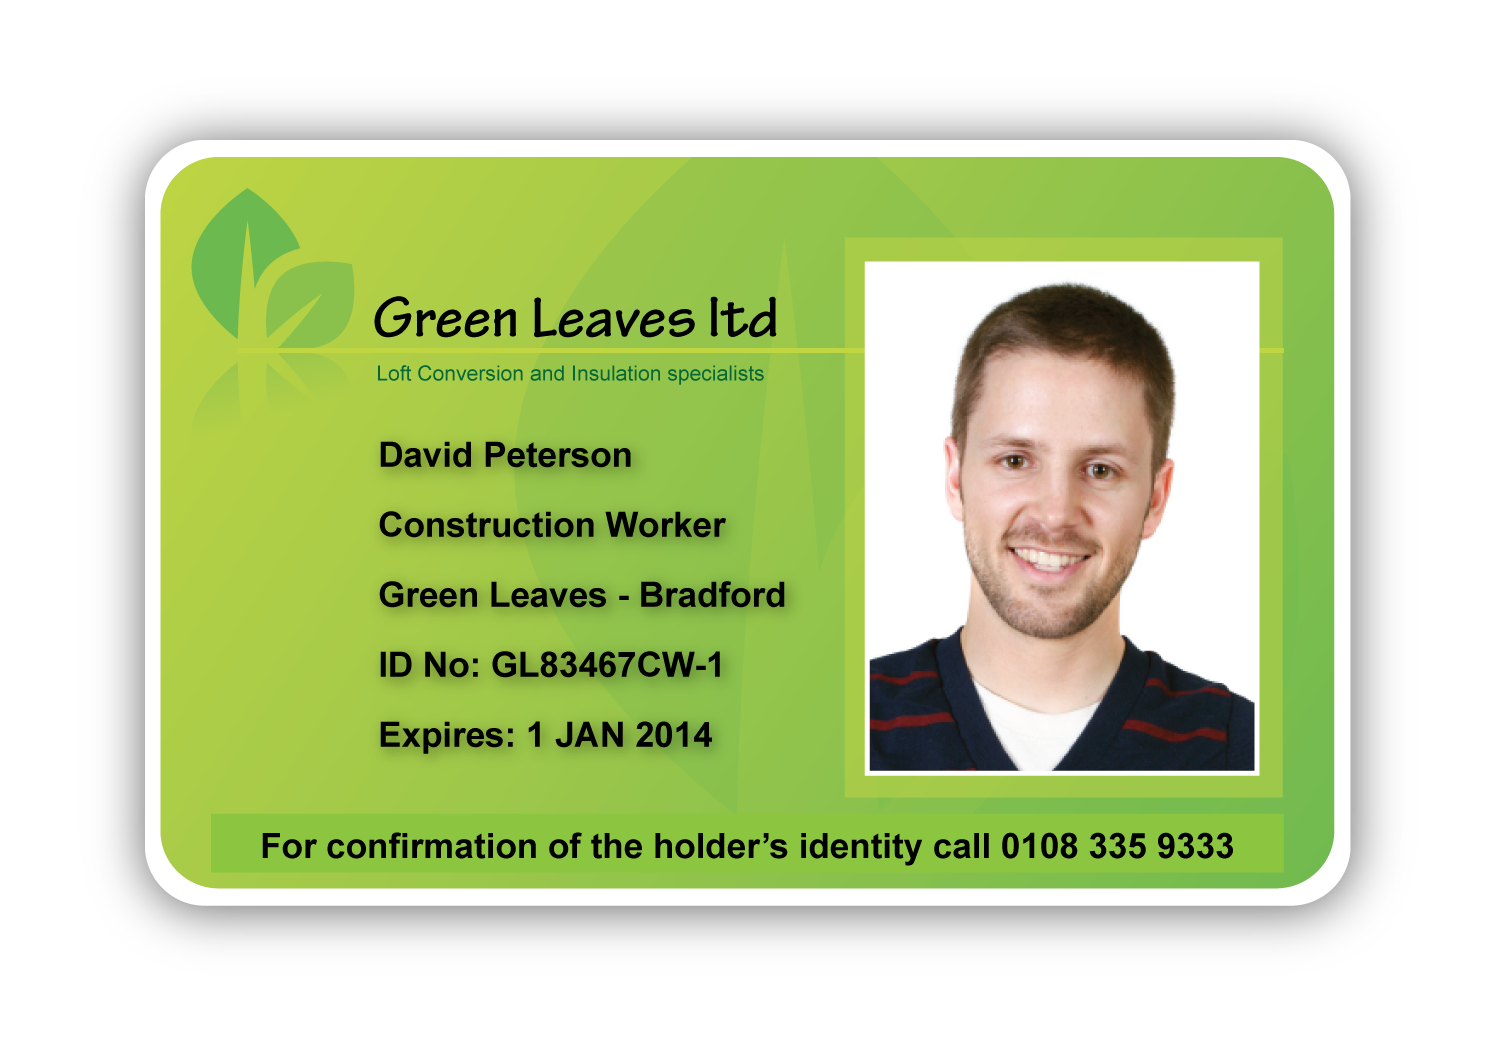 Business Id Cards Uk Gallery - Card Design And Card Template